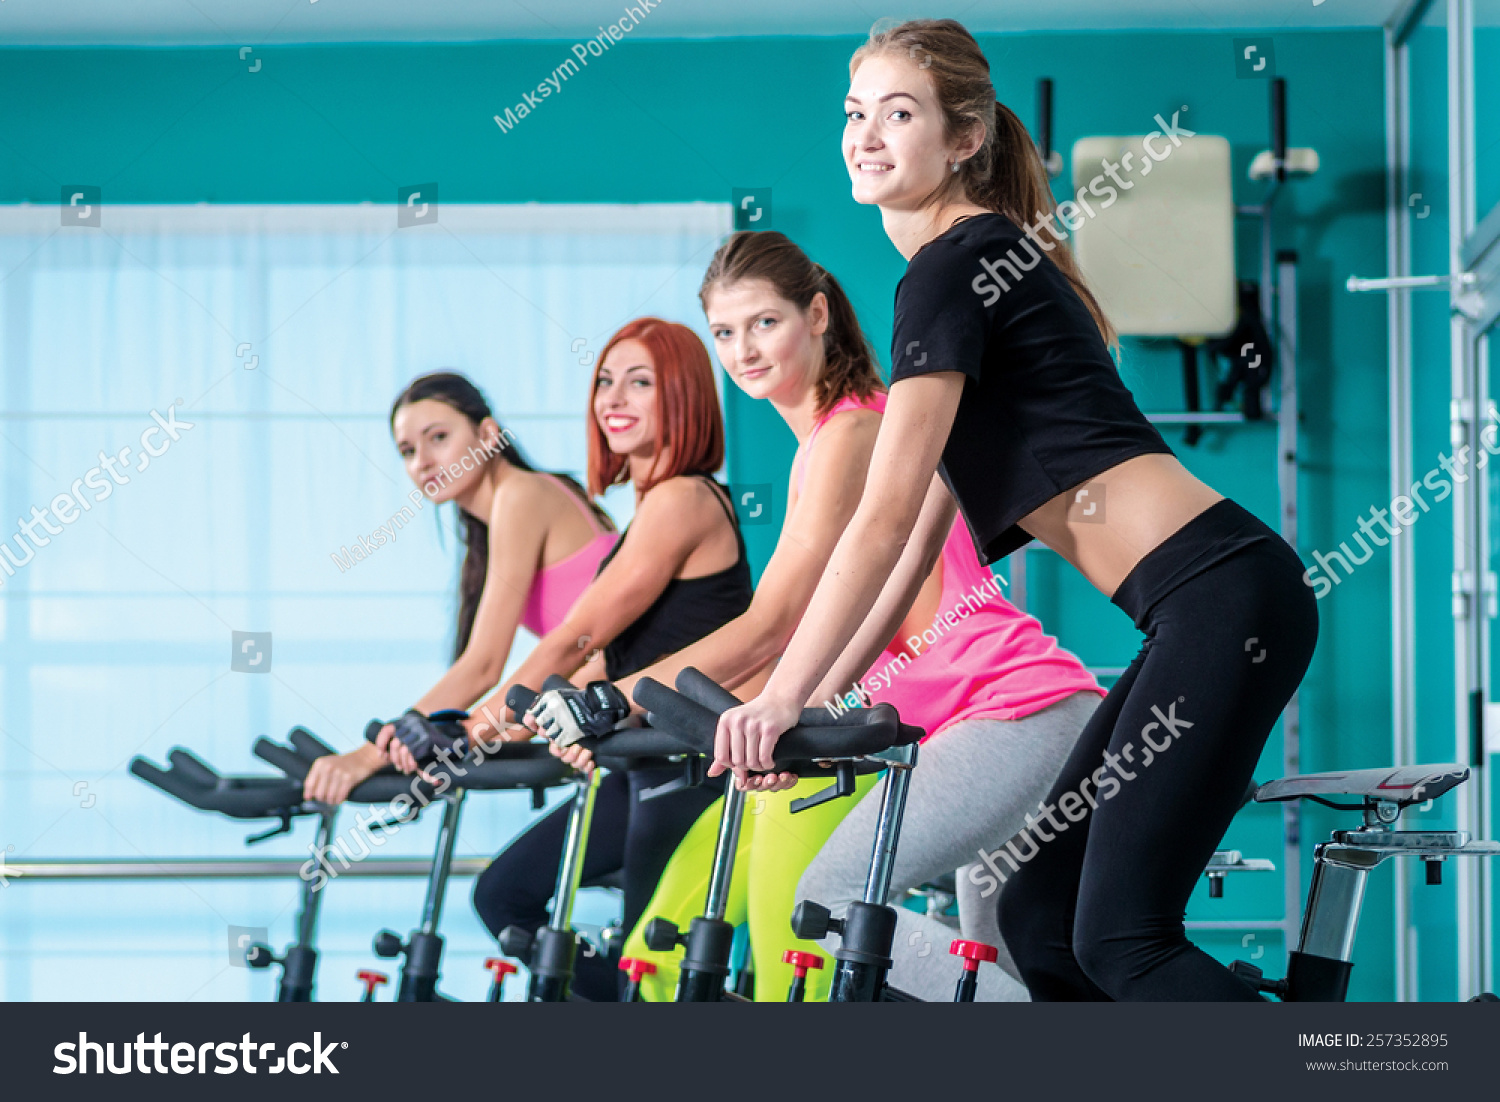 Fitness workout in the gym Athletic girl pedaling on the simulator until her four girlfriends athletes pedaling on a stationary bike at the gym